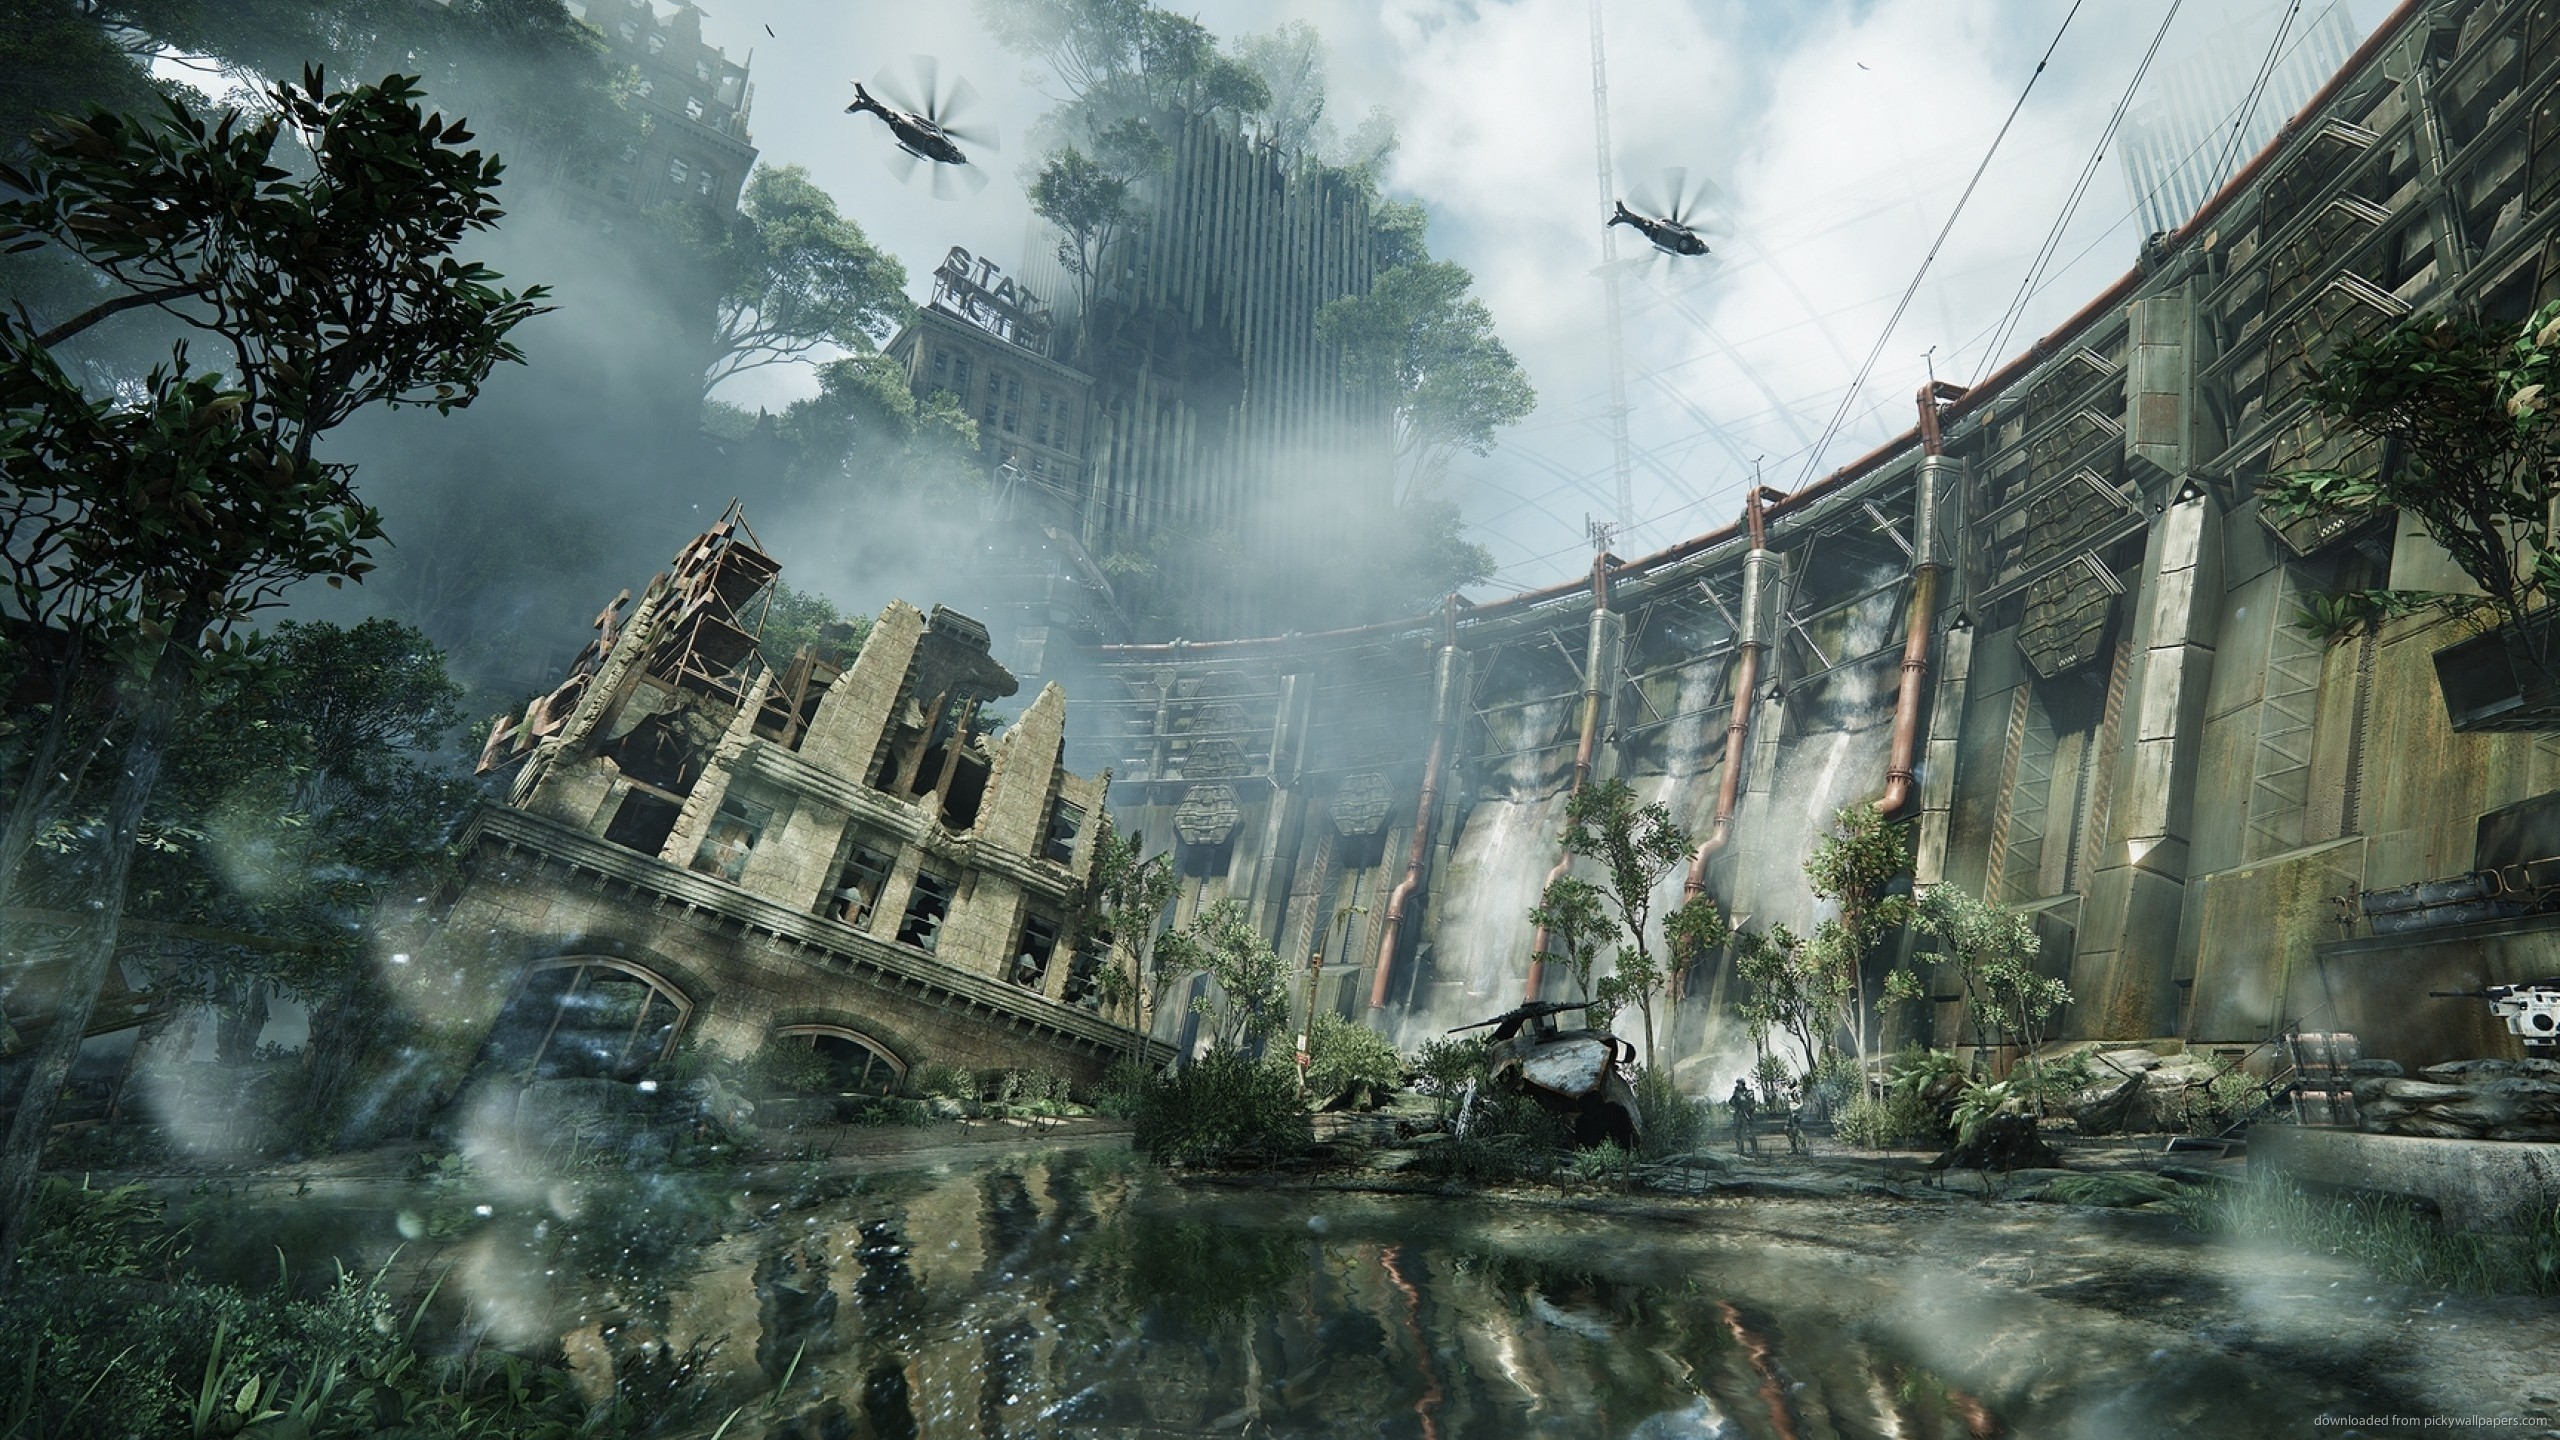 2560x1440 Crysis 3 Wallpaper For Android For Free Wallpaper